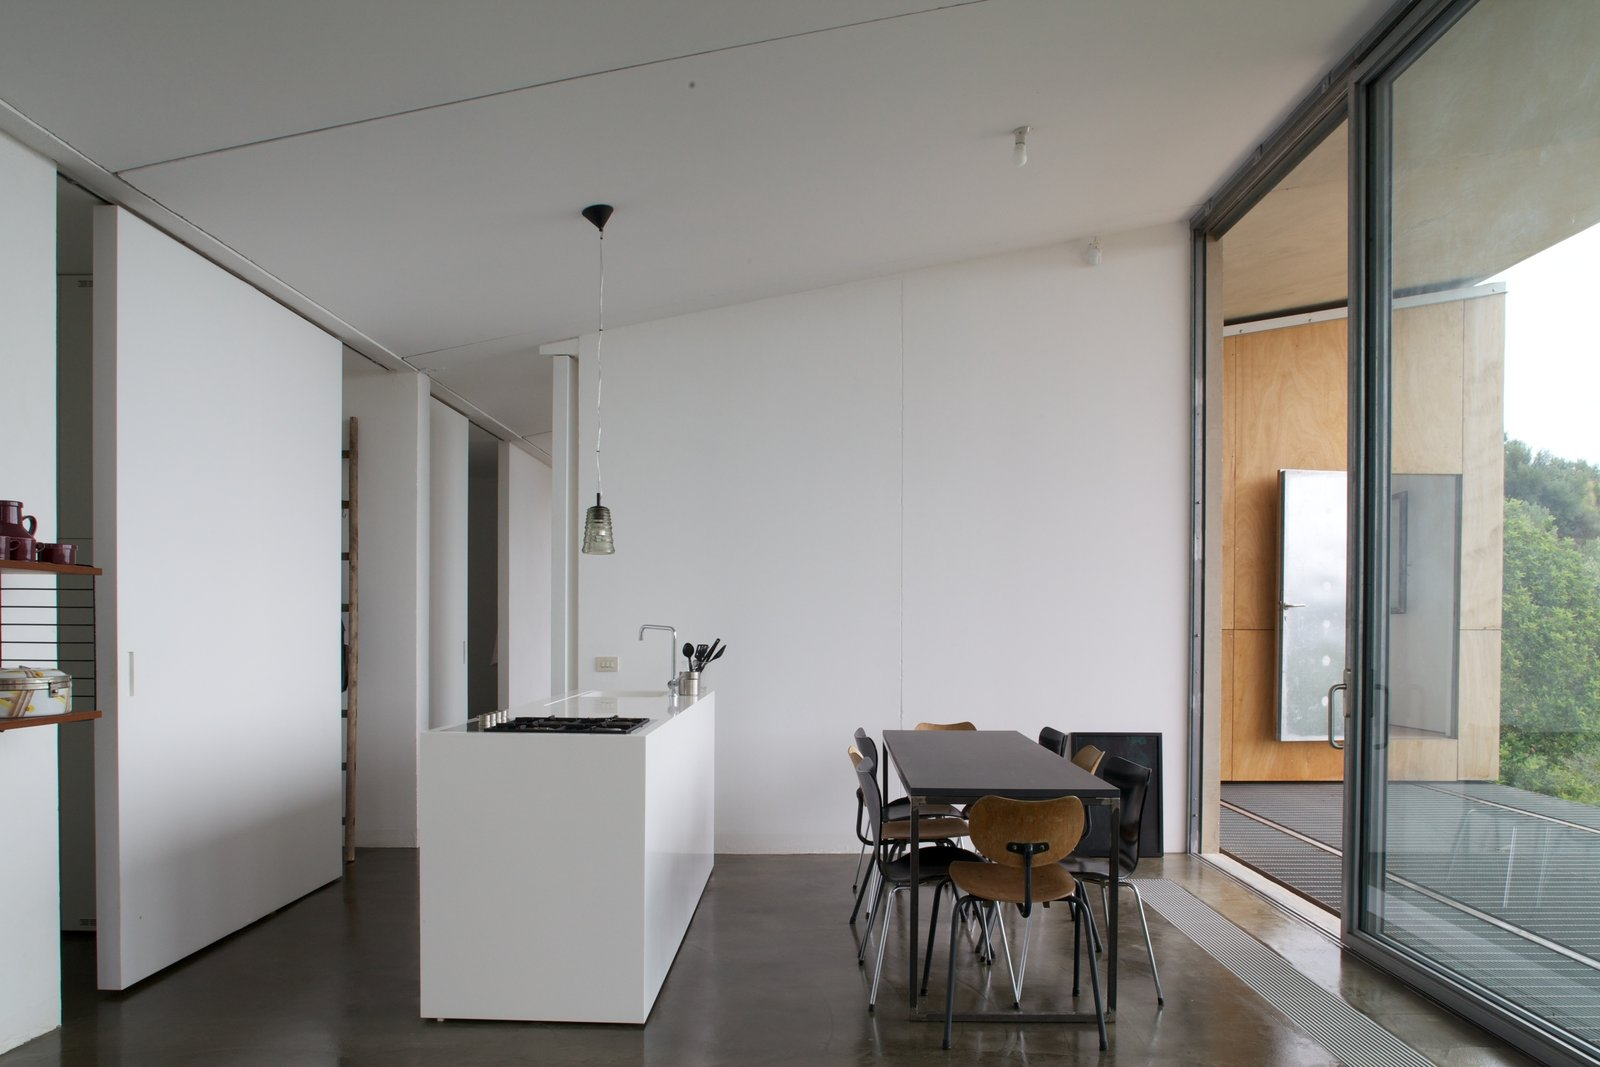 Kitchen, White Cabinet, Concrete Floor, Pendant Lighting, Cooktops, and Drop In Sink  Sea View Villa from Stay in a Minimalist Villa in the Sicilian Countryside, Complete With Sea Views